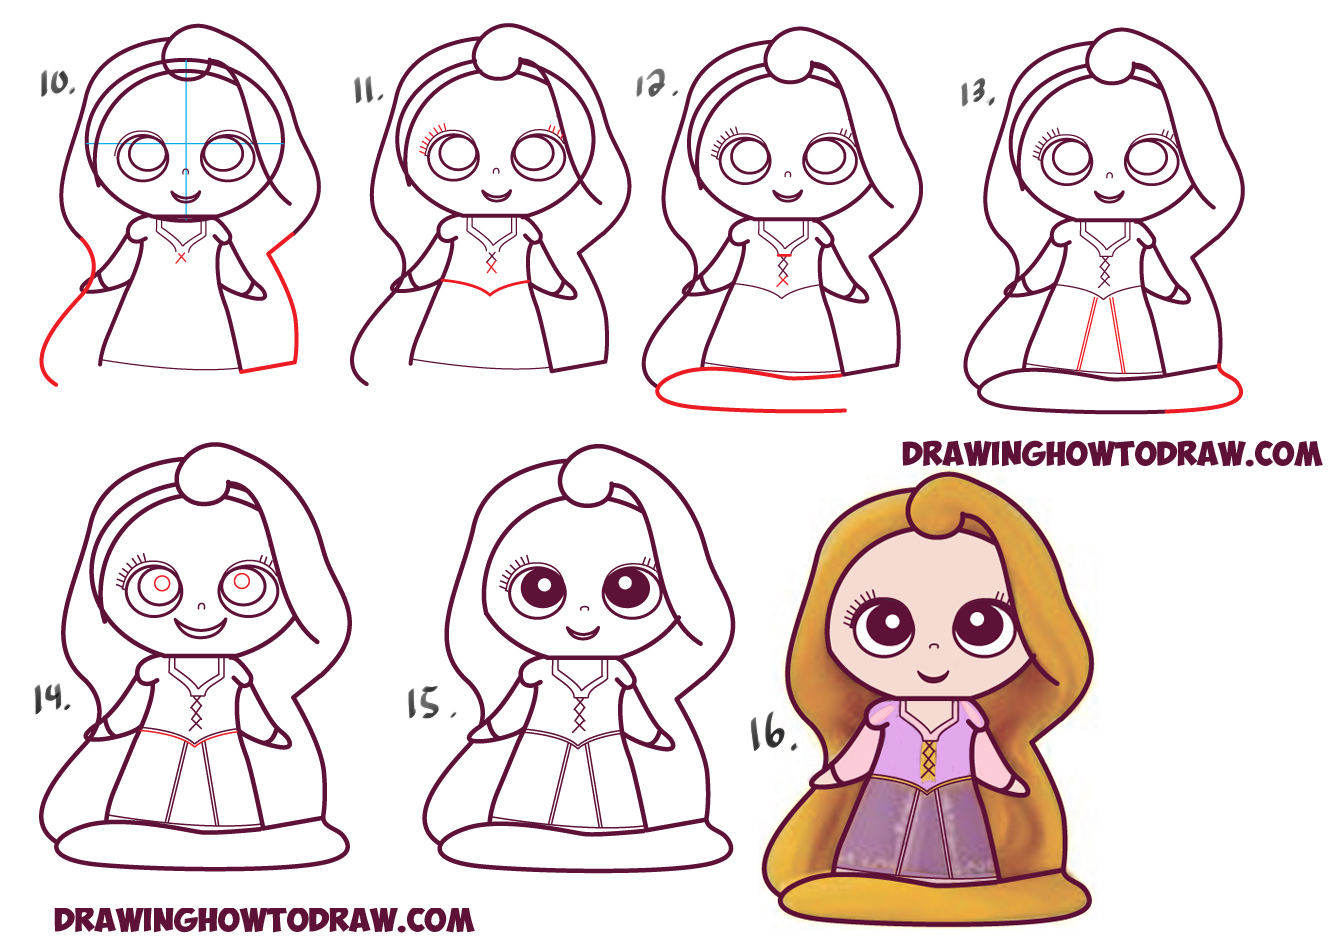 1330x942 How To Draw Kawaii Chibi Rapunzel From Disney's Tangled In Easy